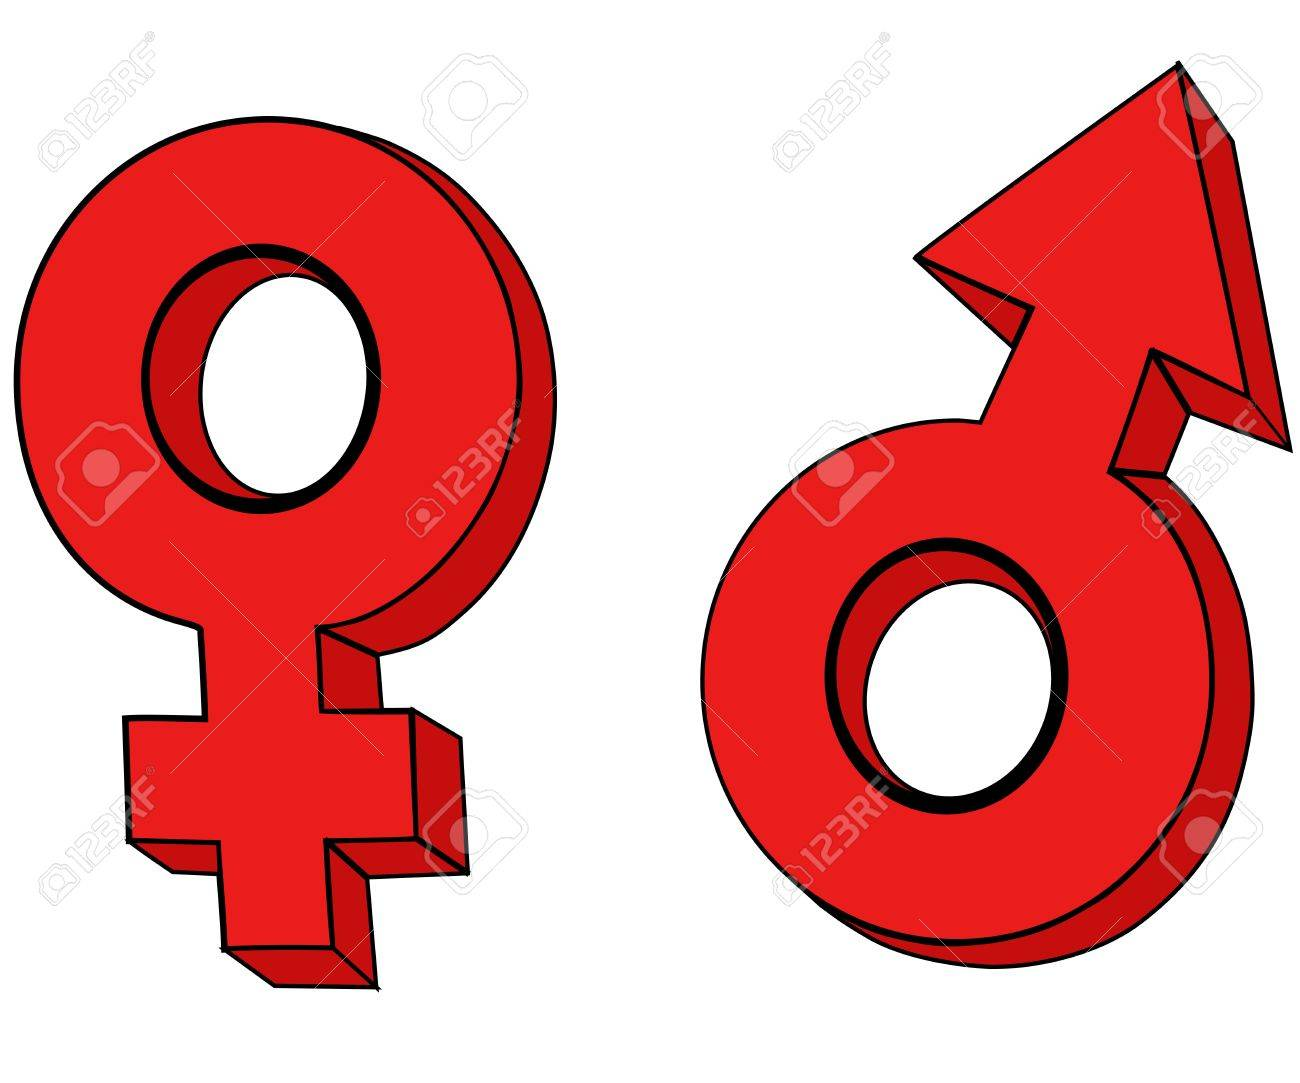 Male Female Gender Symbols Royalty Free Cliparts Vectors And Stock